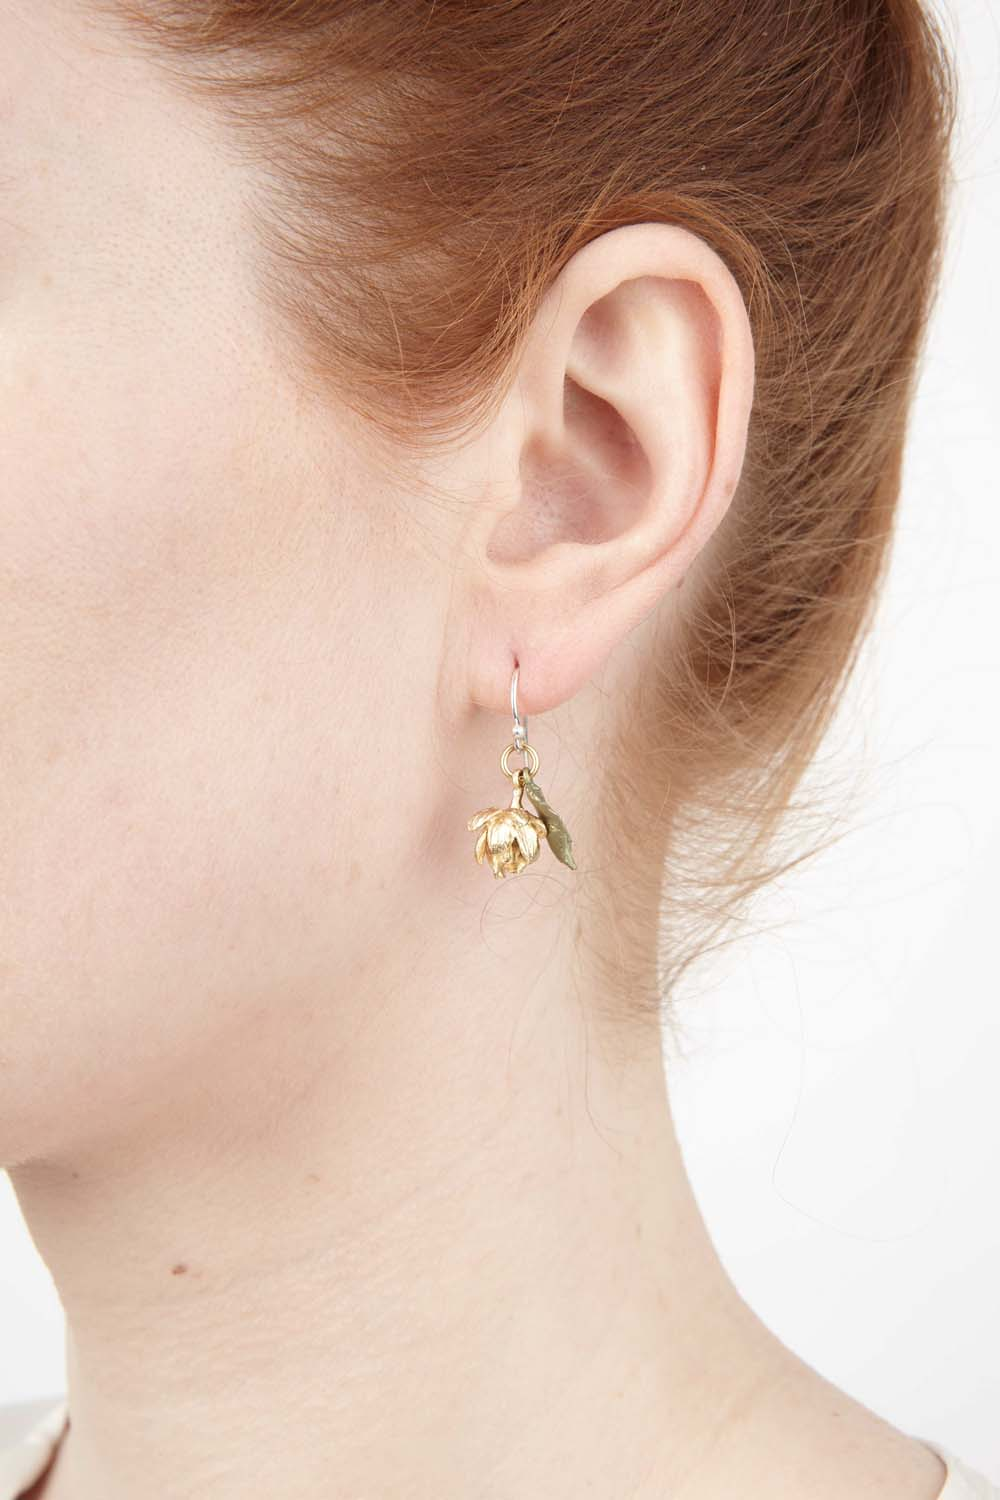 Hops Earrings - Petite Wire